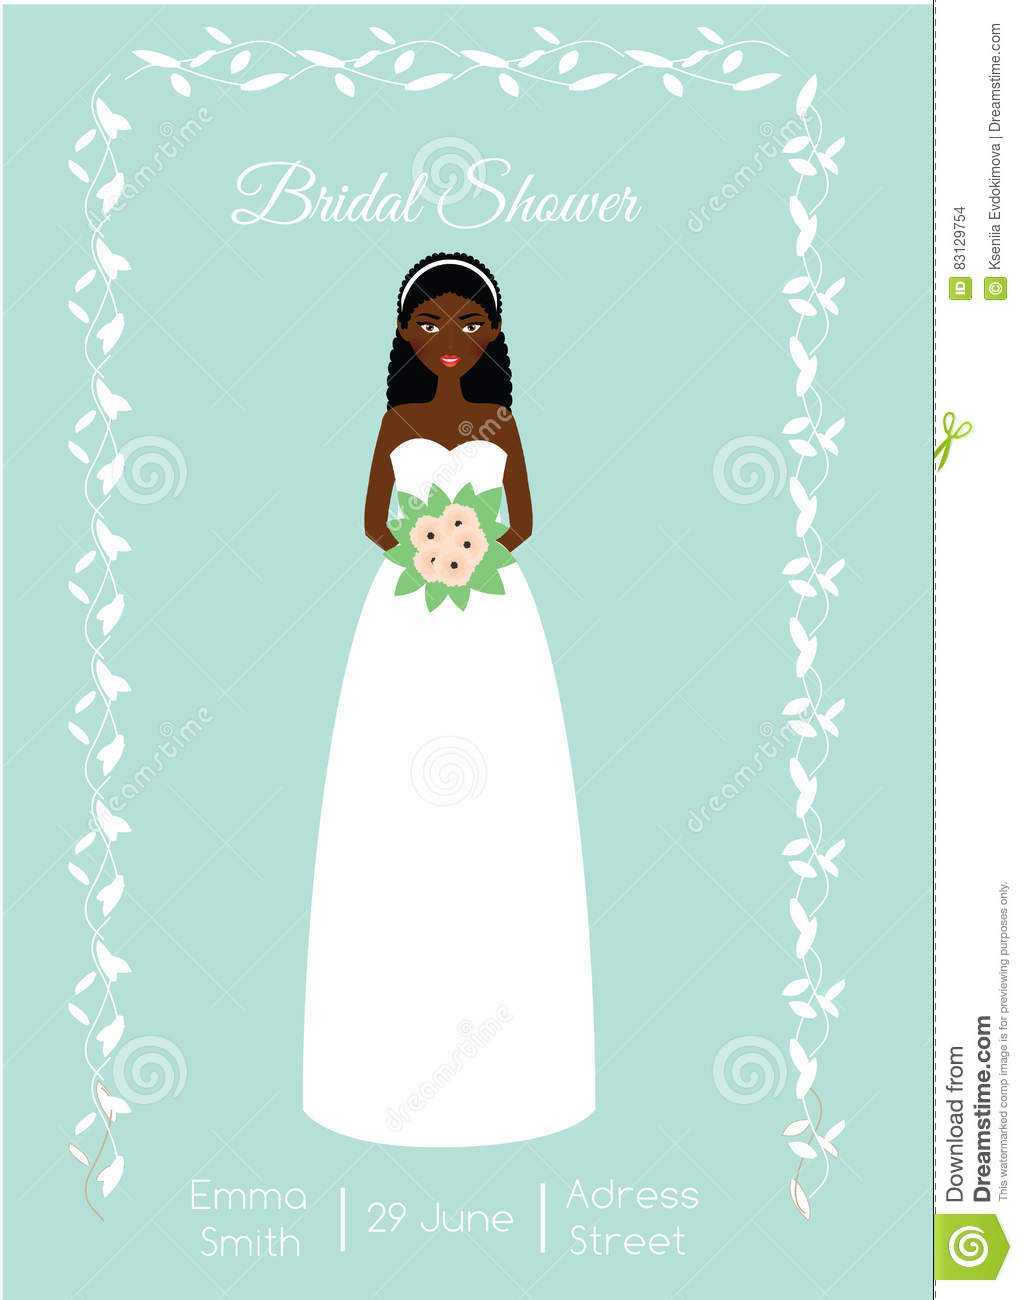 Bridal Shower Card With Smiling Happy Bride. African American Woman ...